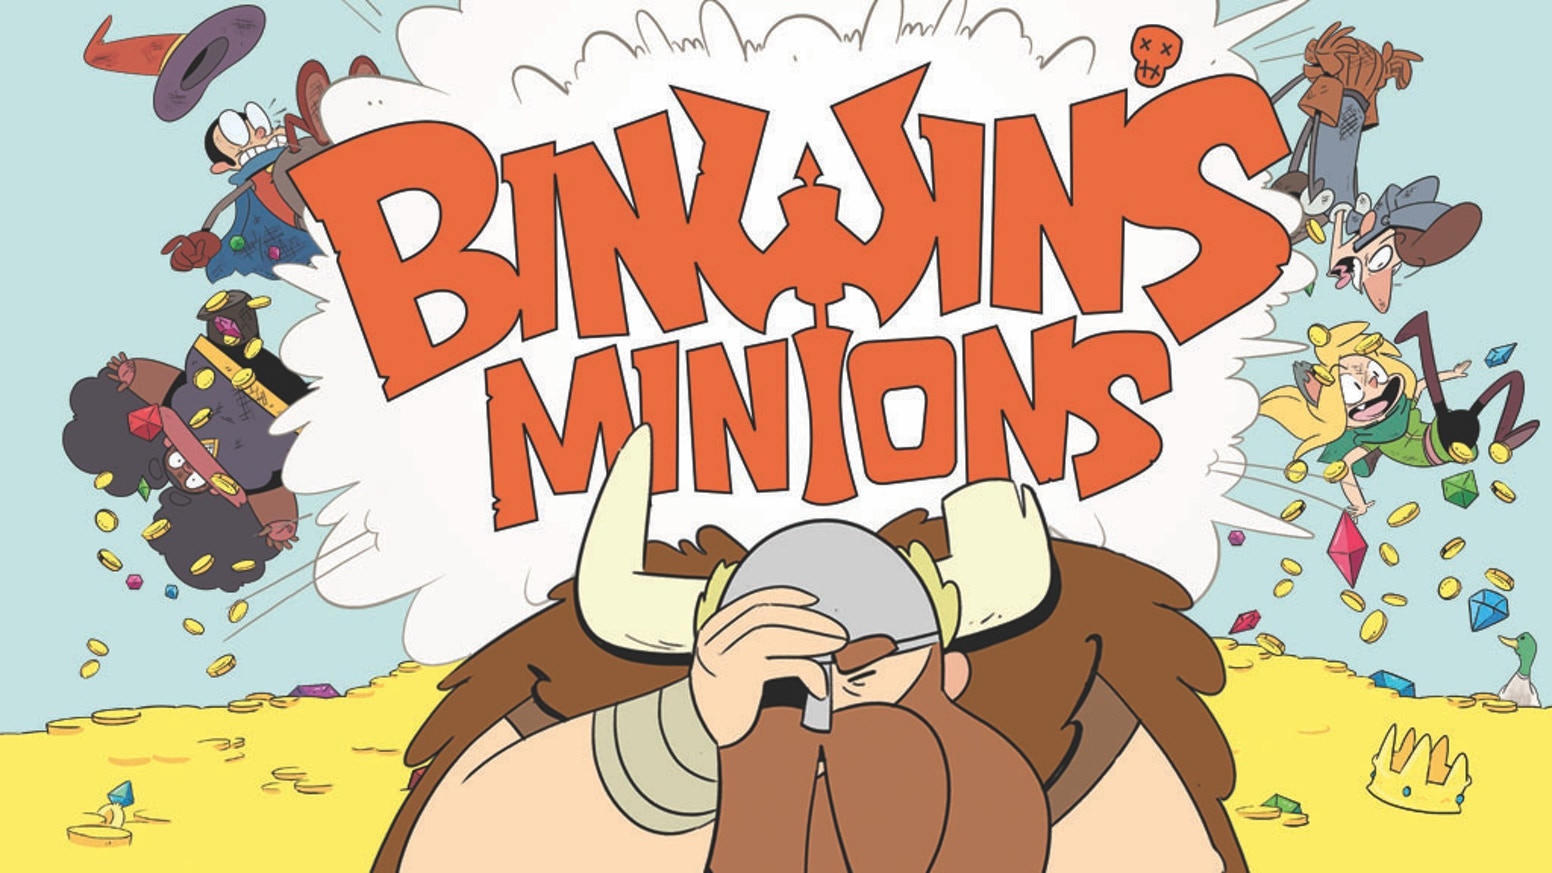 Collecting the comic adventures of Binwin Bronzebottom and his hopelessly-hapless band of Minions into their very first book!